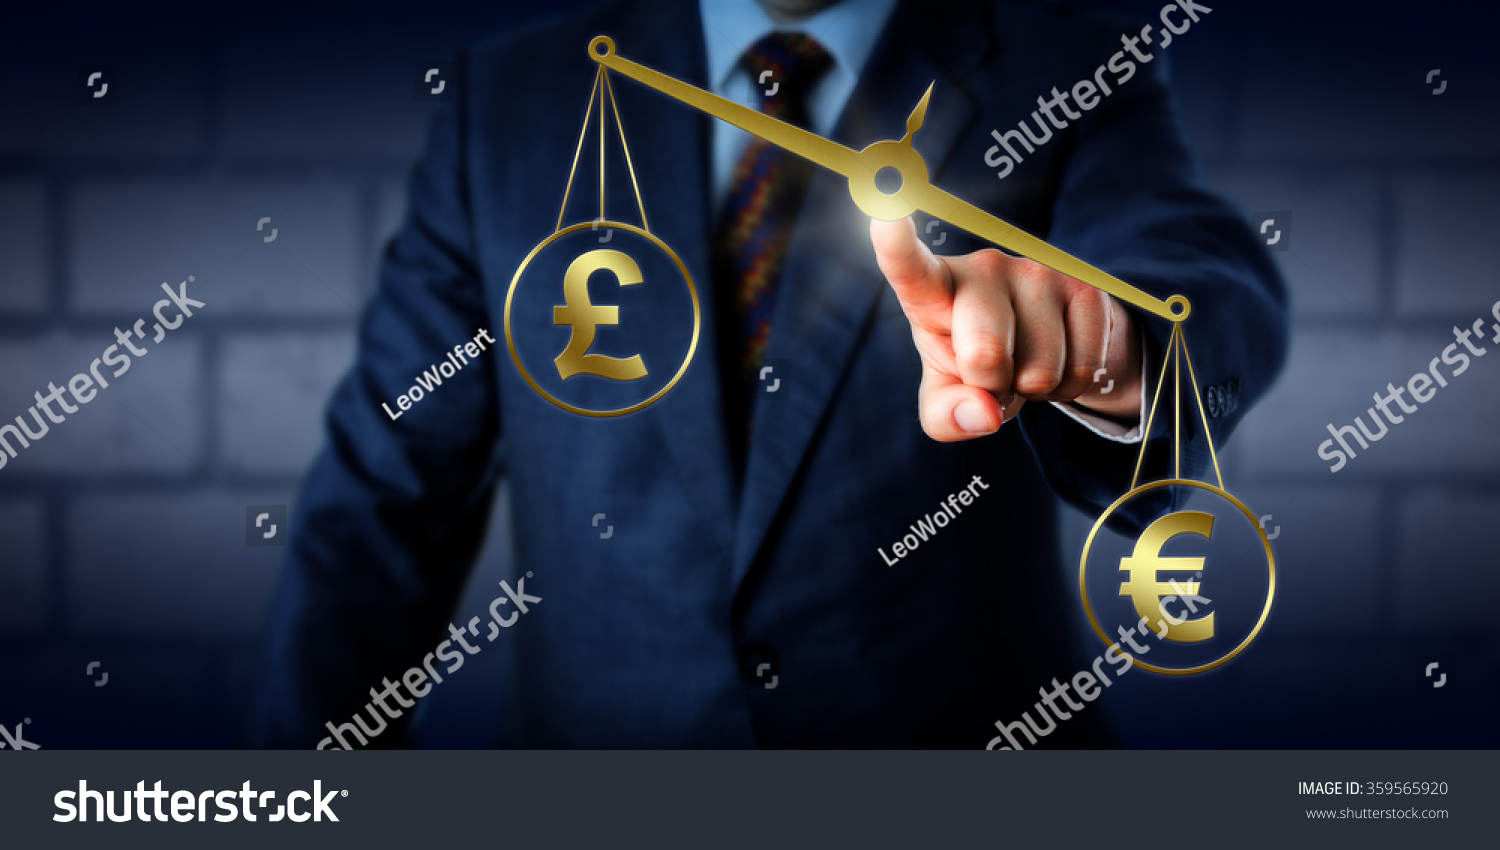 Euro currency symbol outbalancing british pound stock photo euro currency symbol is outbalancing the british pound sterling sign on a virtual golden pair of buycottarizona Choice Image